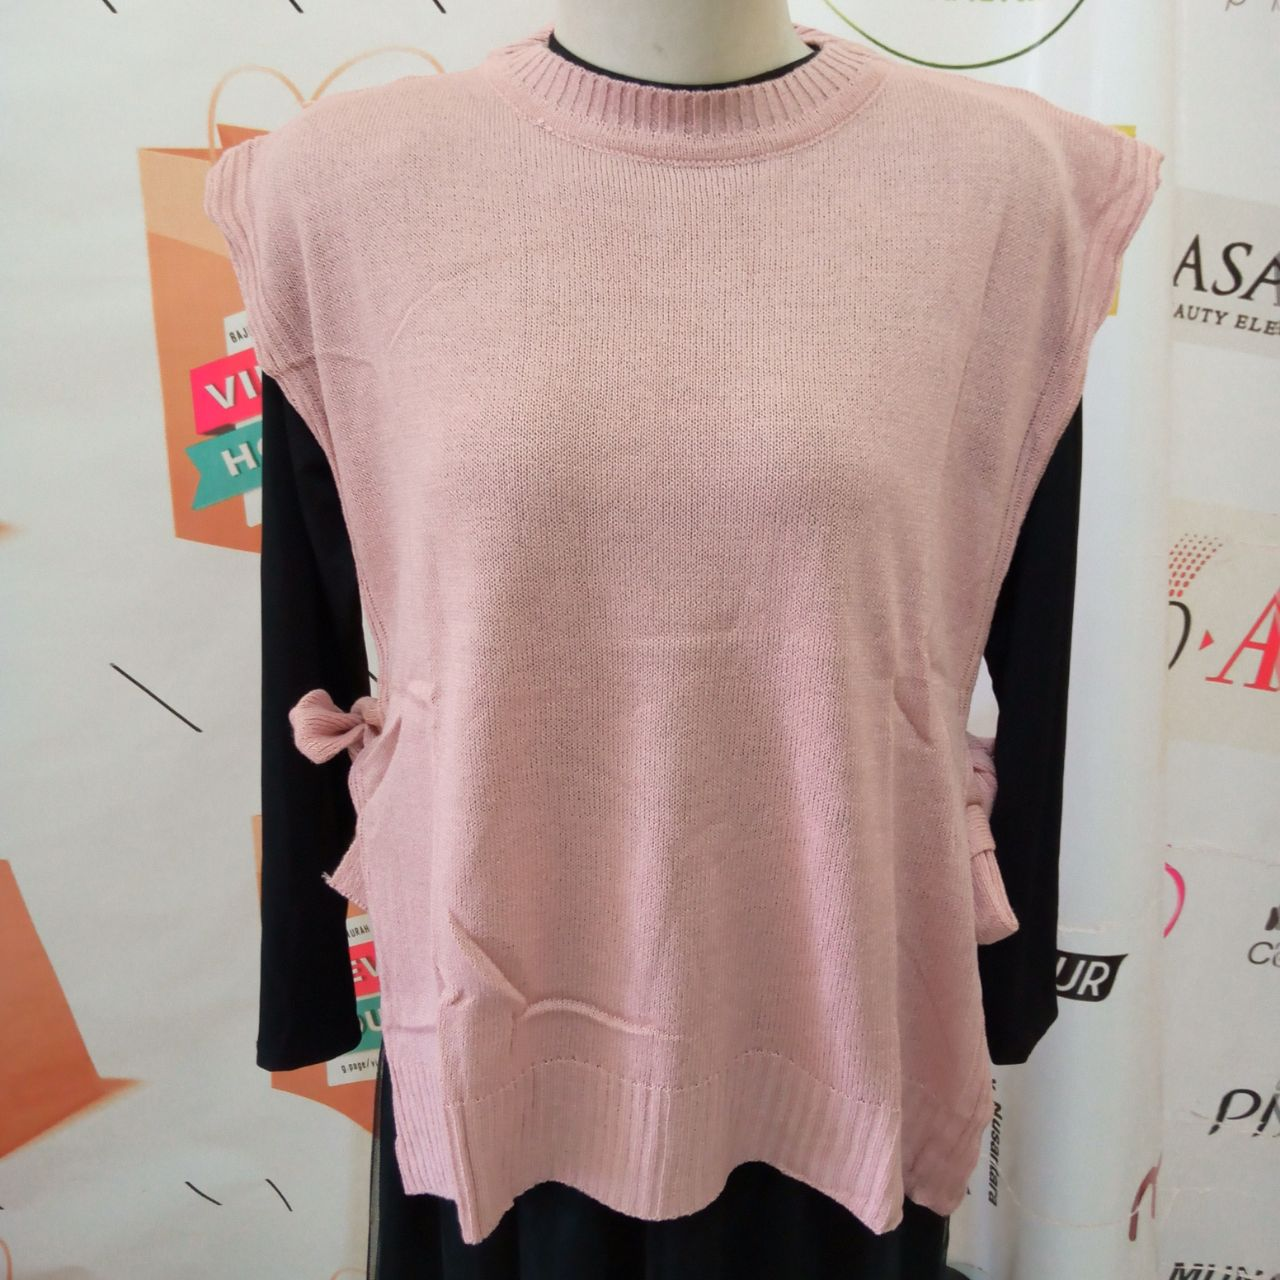 ini adalah Rajut Vest Andin Dusty, size: L, material: knit, color: pink, brand: vestknittindonesia, age_group: all ages, gender: female